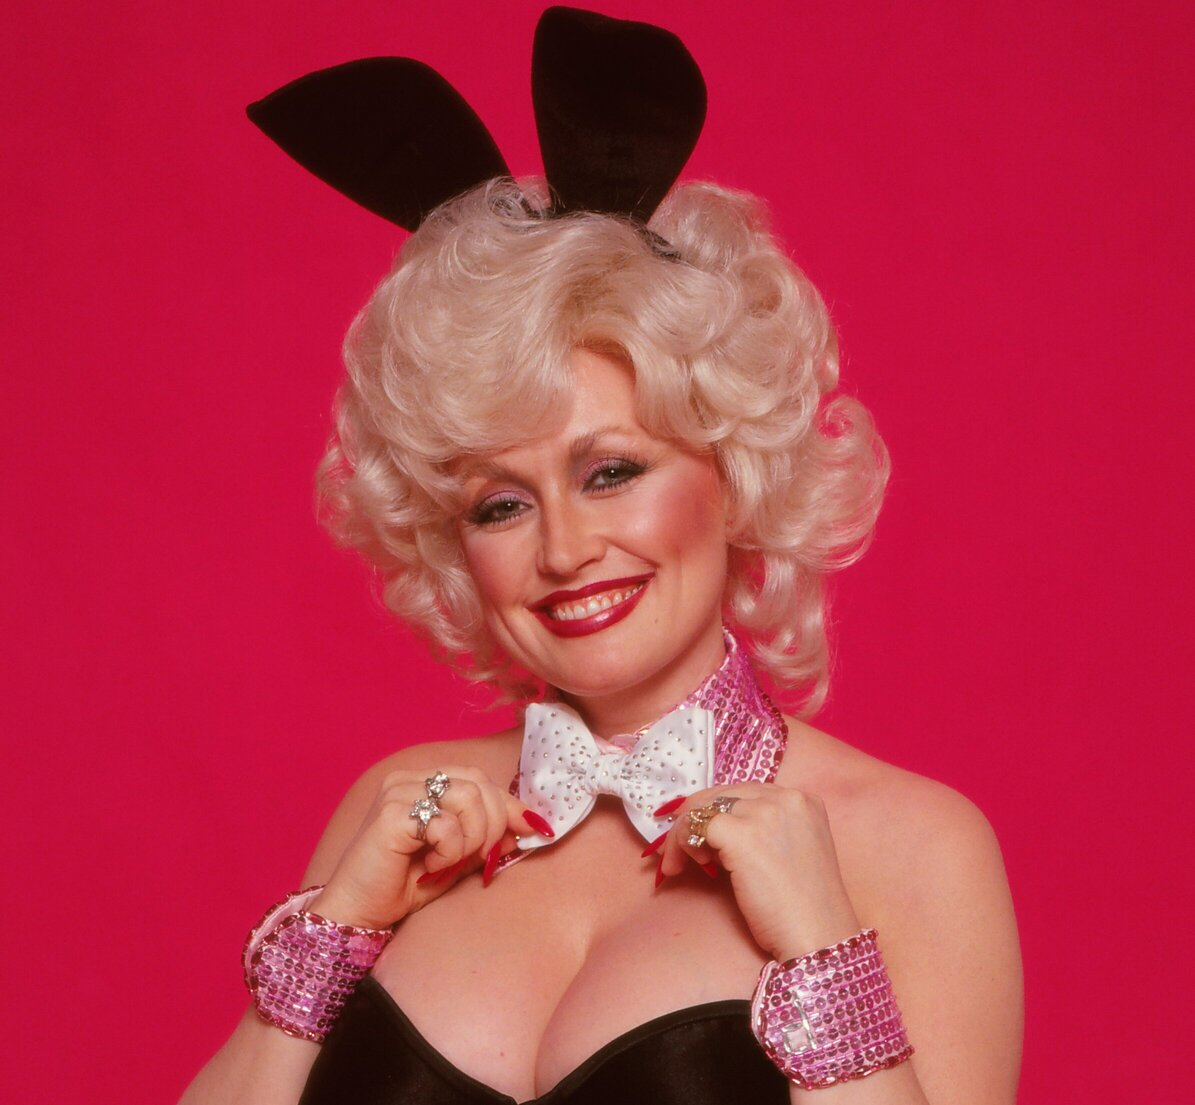 Dolly Parton's photo for Playboy Magazine in 1978. She's in the iconic bunny costume with black bunny ears and a silver bow around her neck.